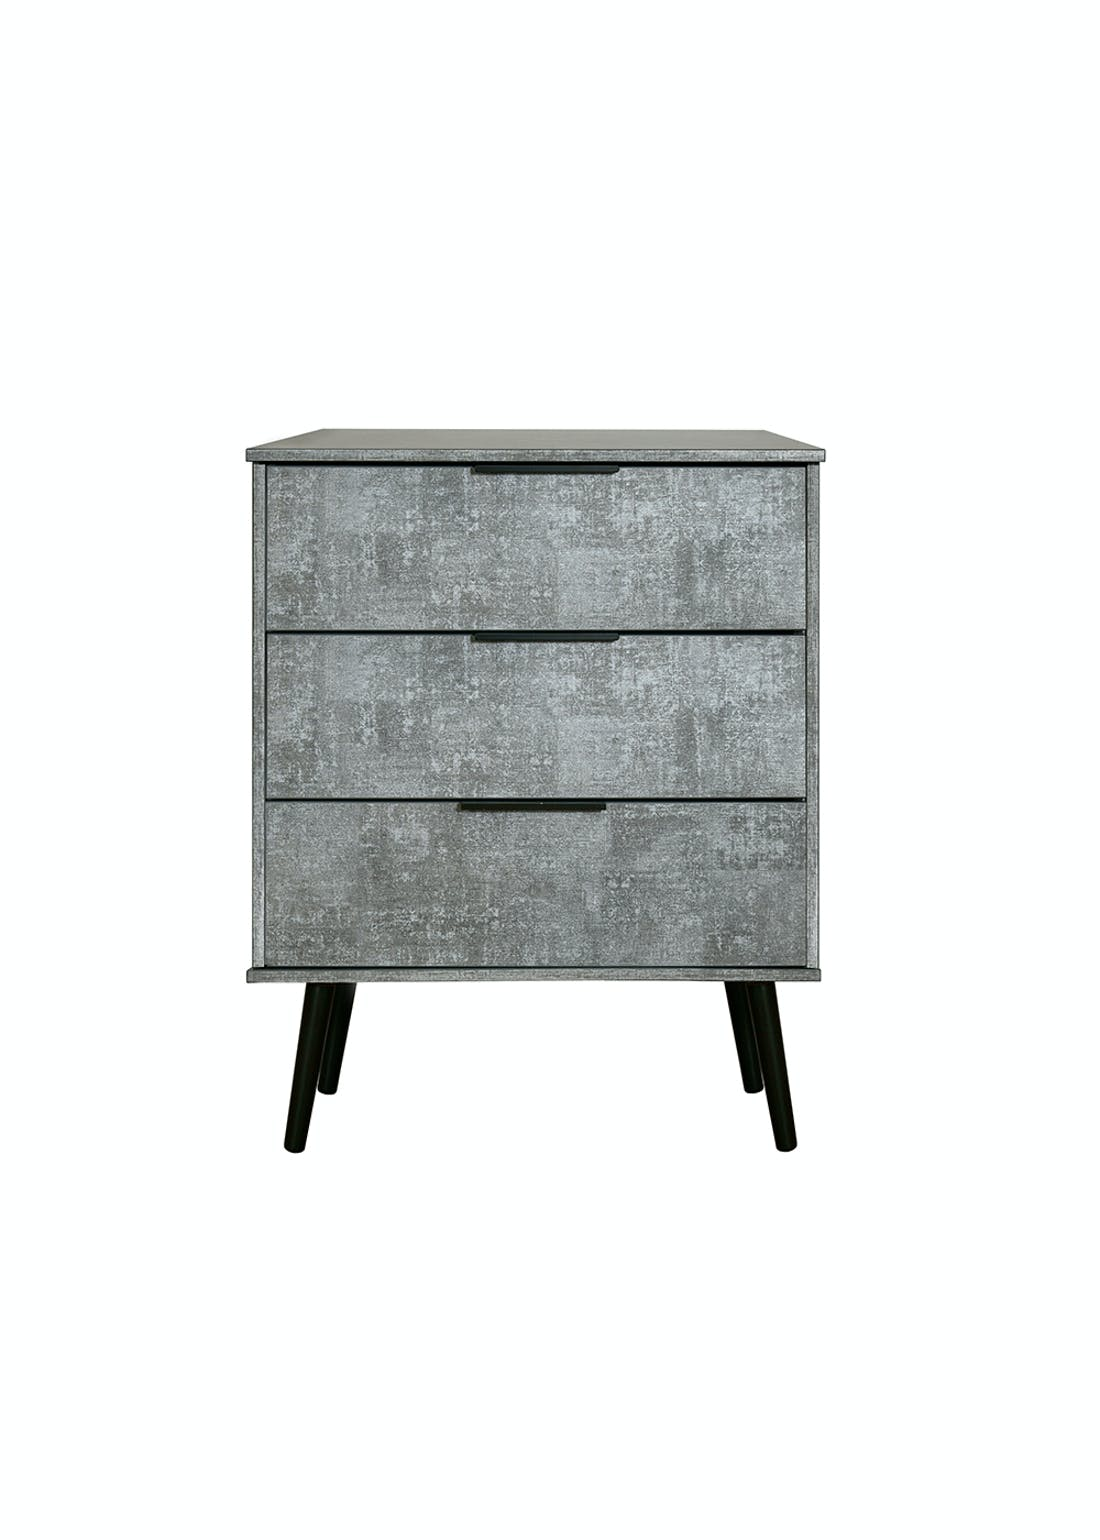 Swift Milano 3 Drawer Midi Chest (74cm x 57.5cm x 39.5cm)